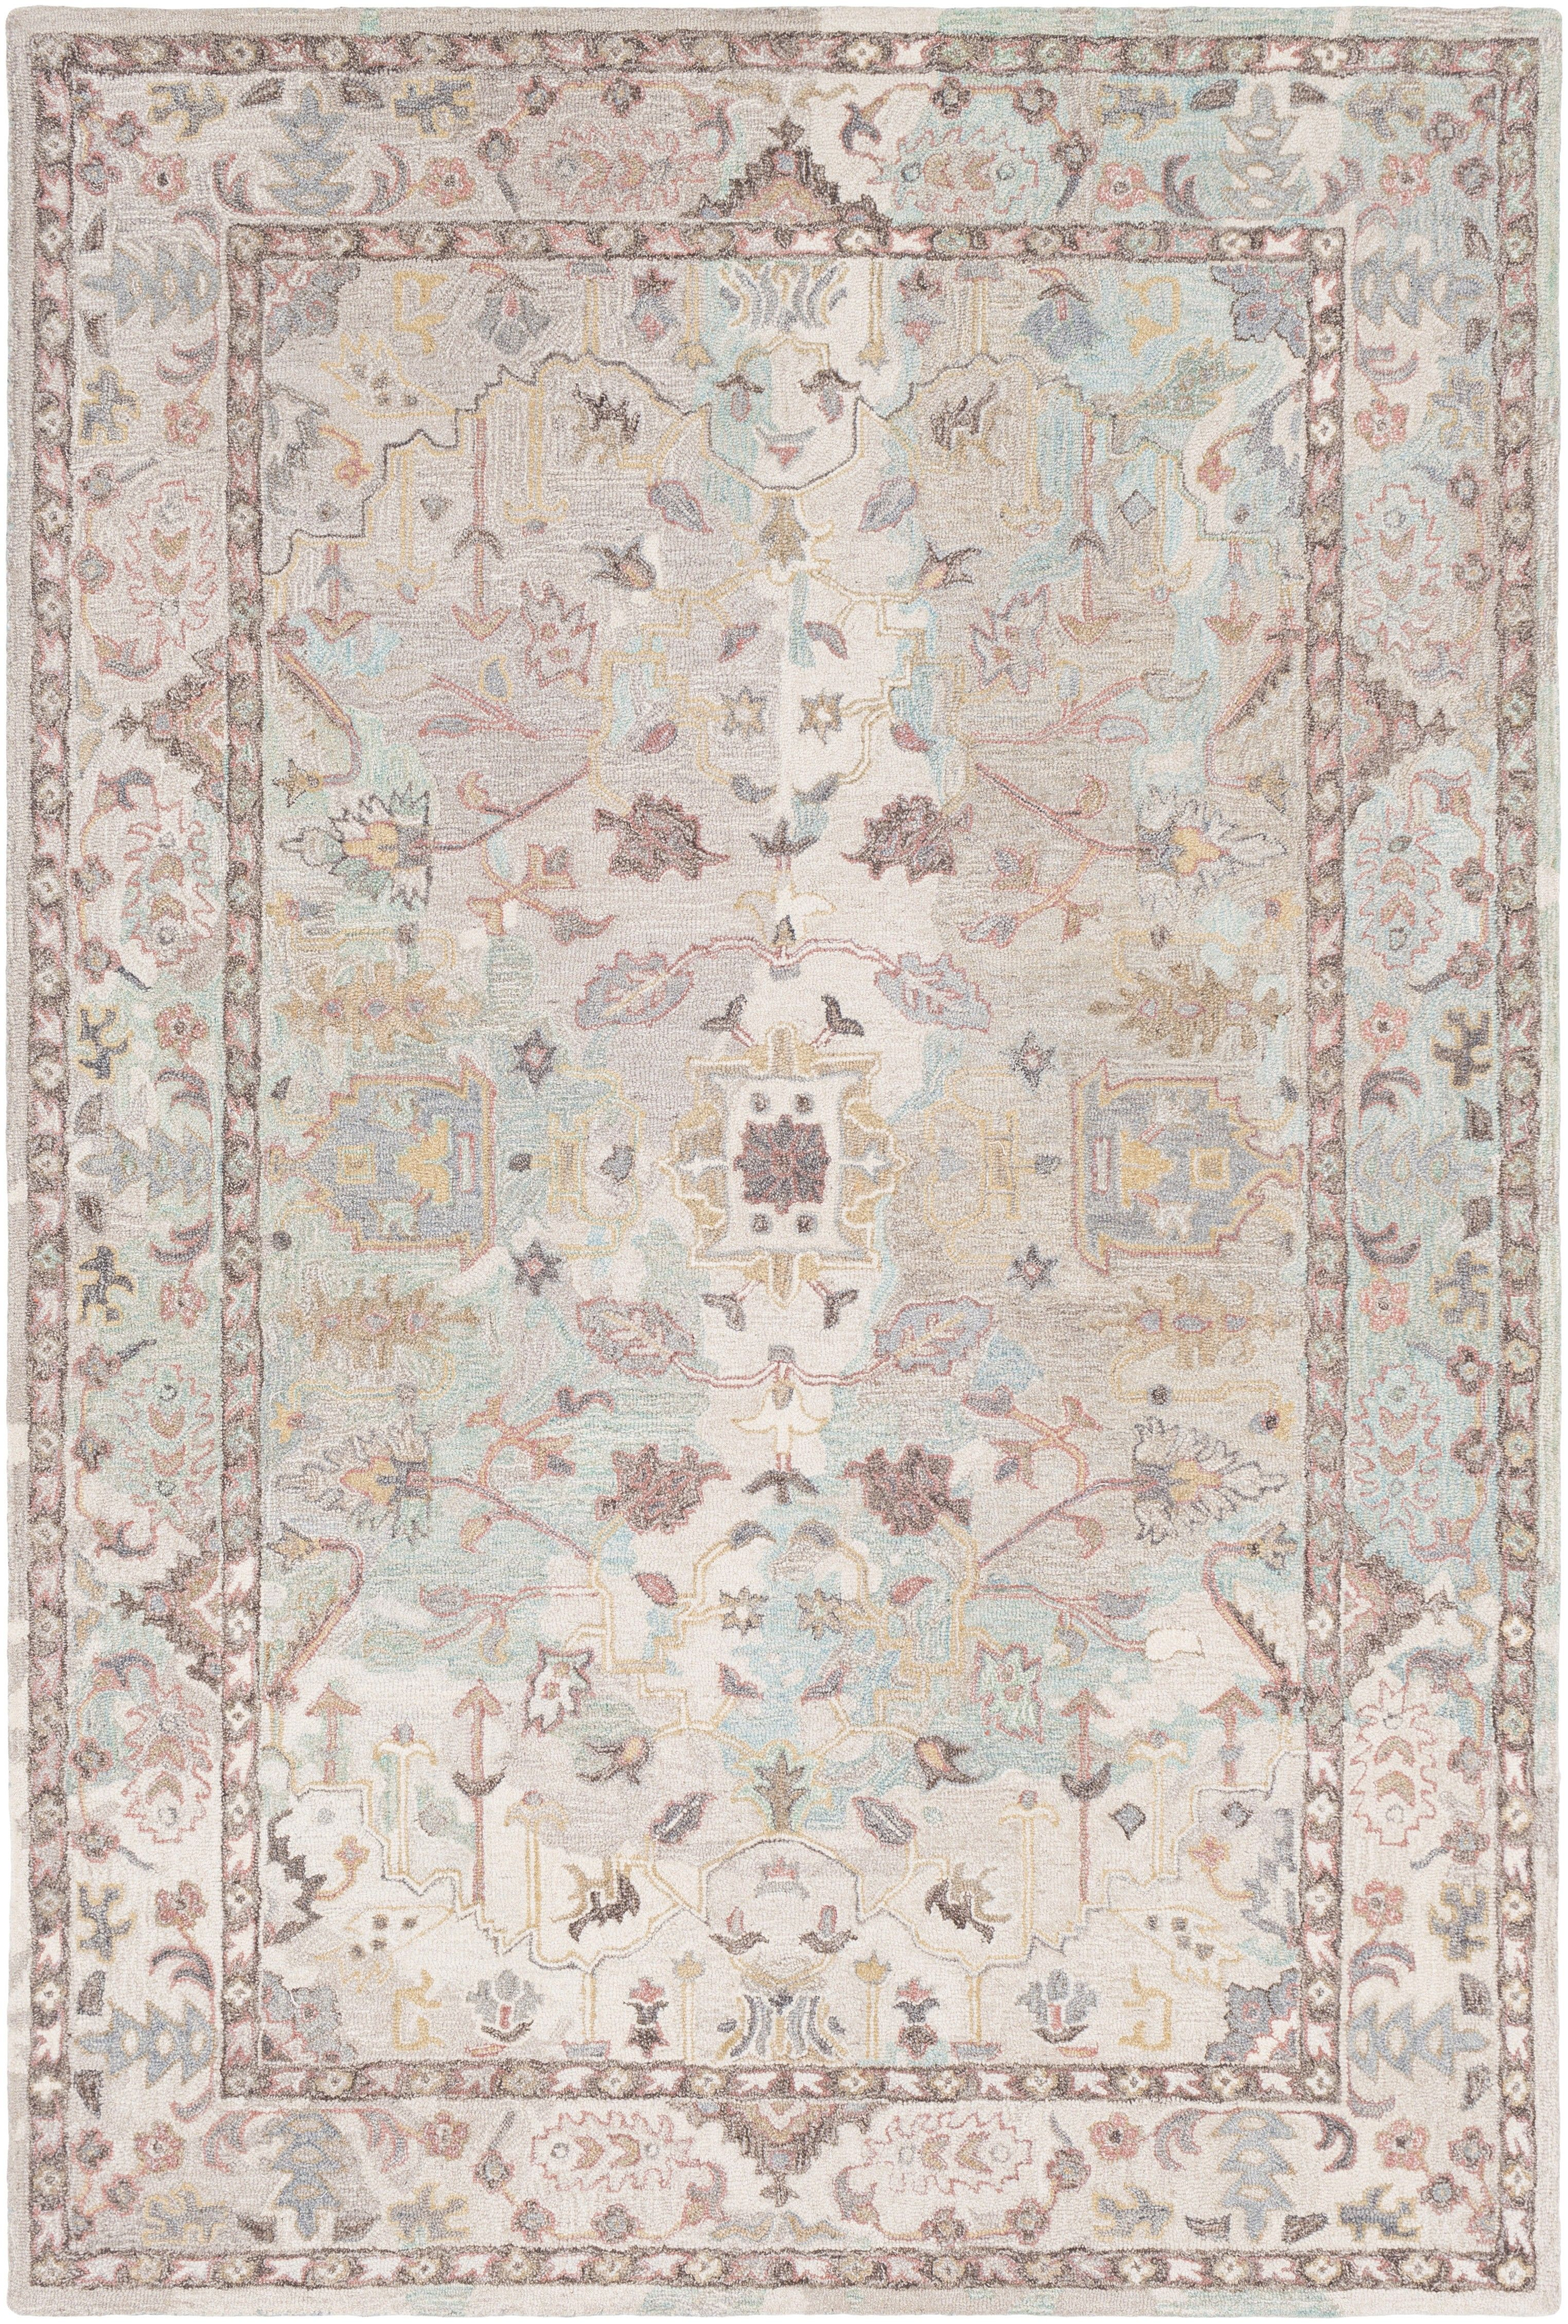 Brilliantly Blend Classic And Contemporary Styles With Floral And Geometric Motifs On A Background Of Variegated Pastels Area Rugs Rugs Traditional Area Rugs